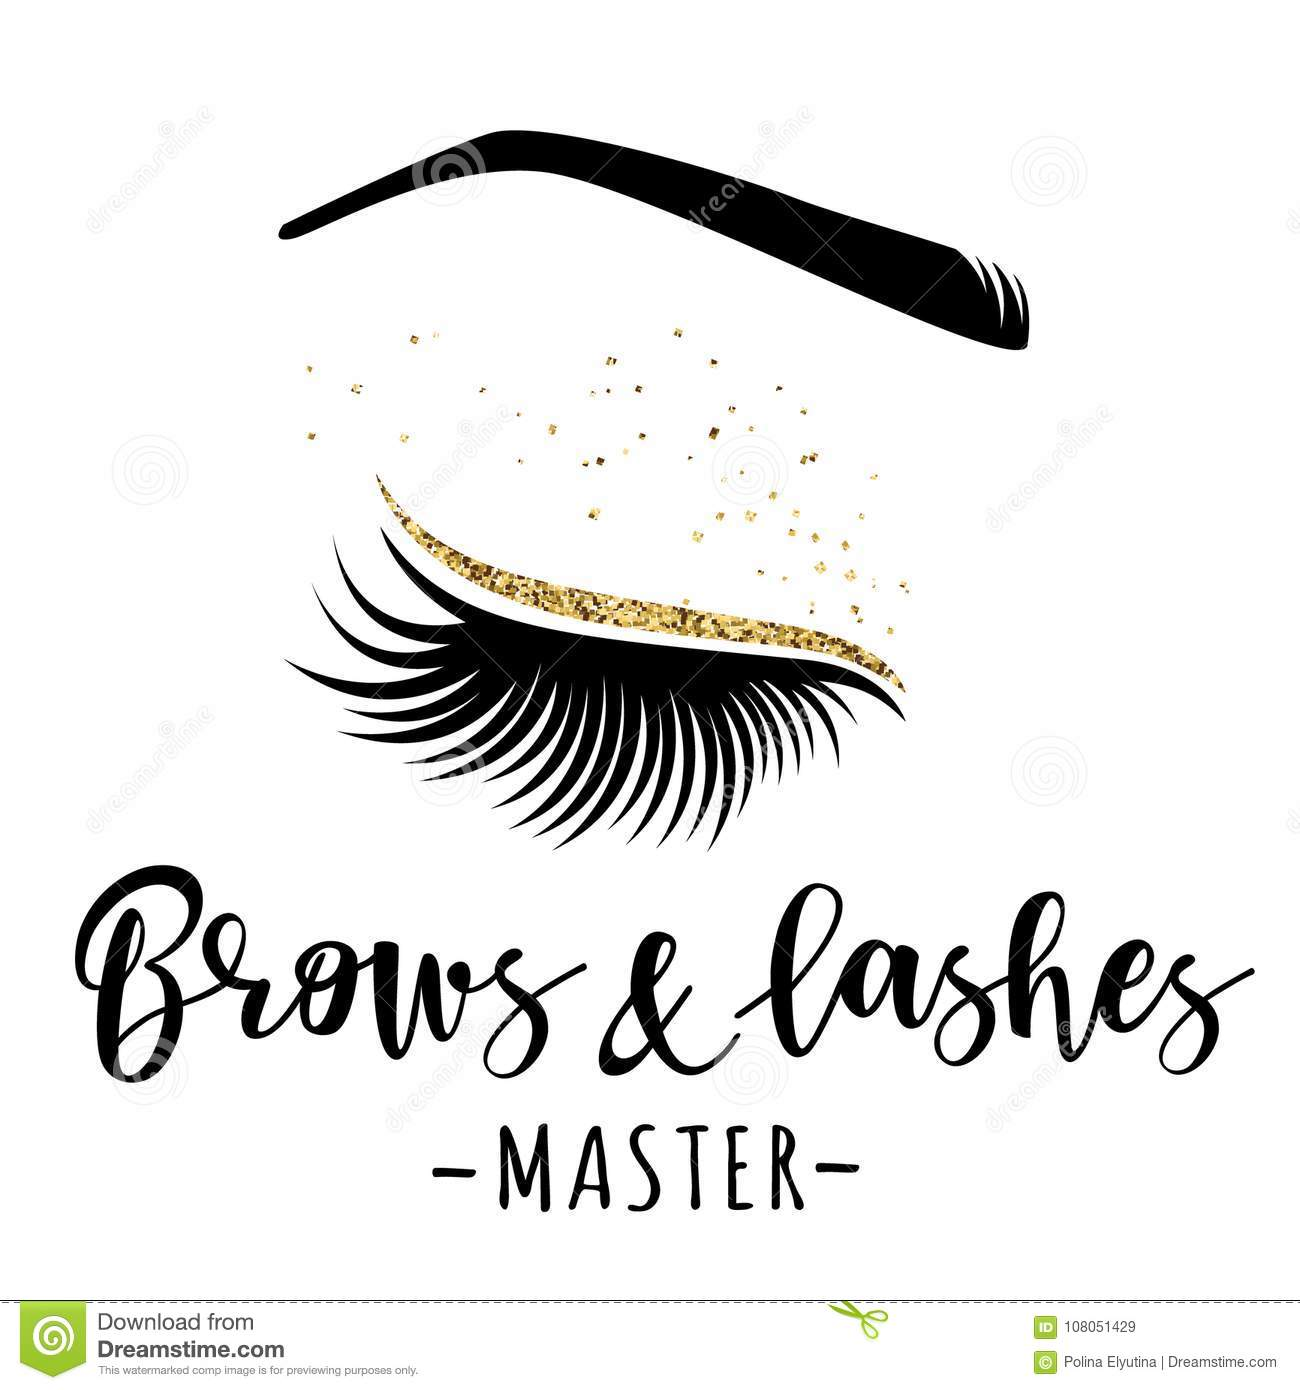 2700fa6a0f8 Brows and lashes gold logo. Vector illustration of lashes and brow. For  beauty salon, lash extensions maker, brow master.